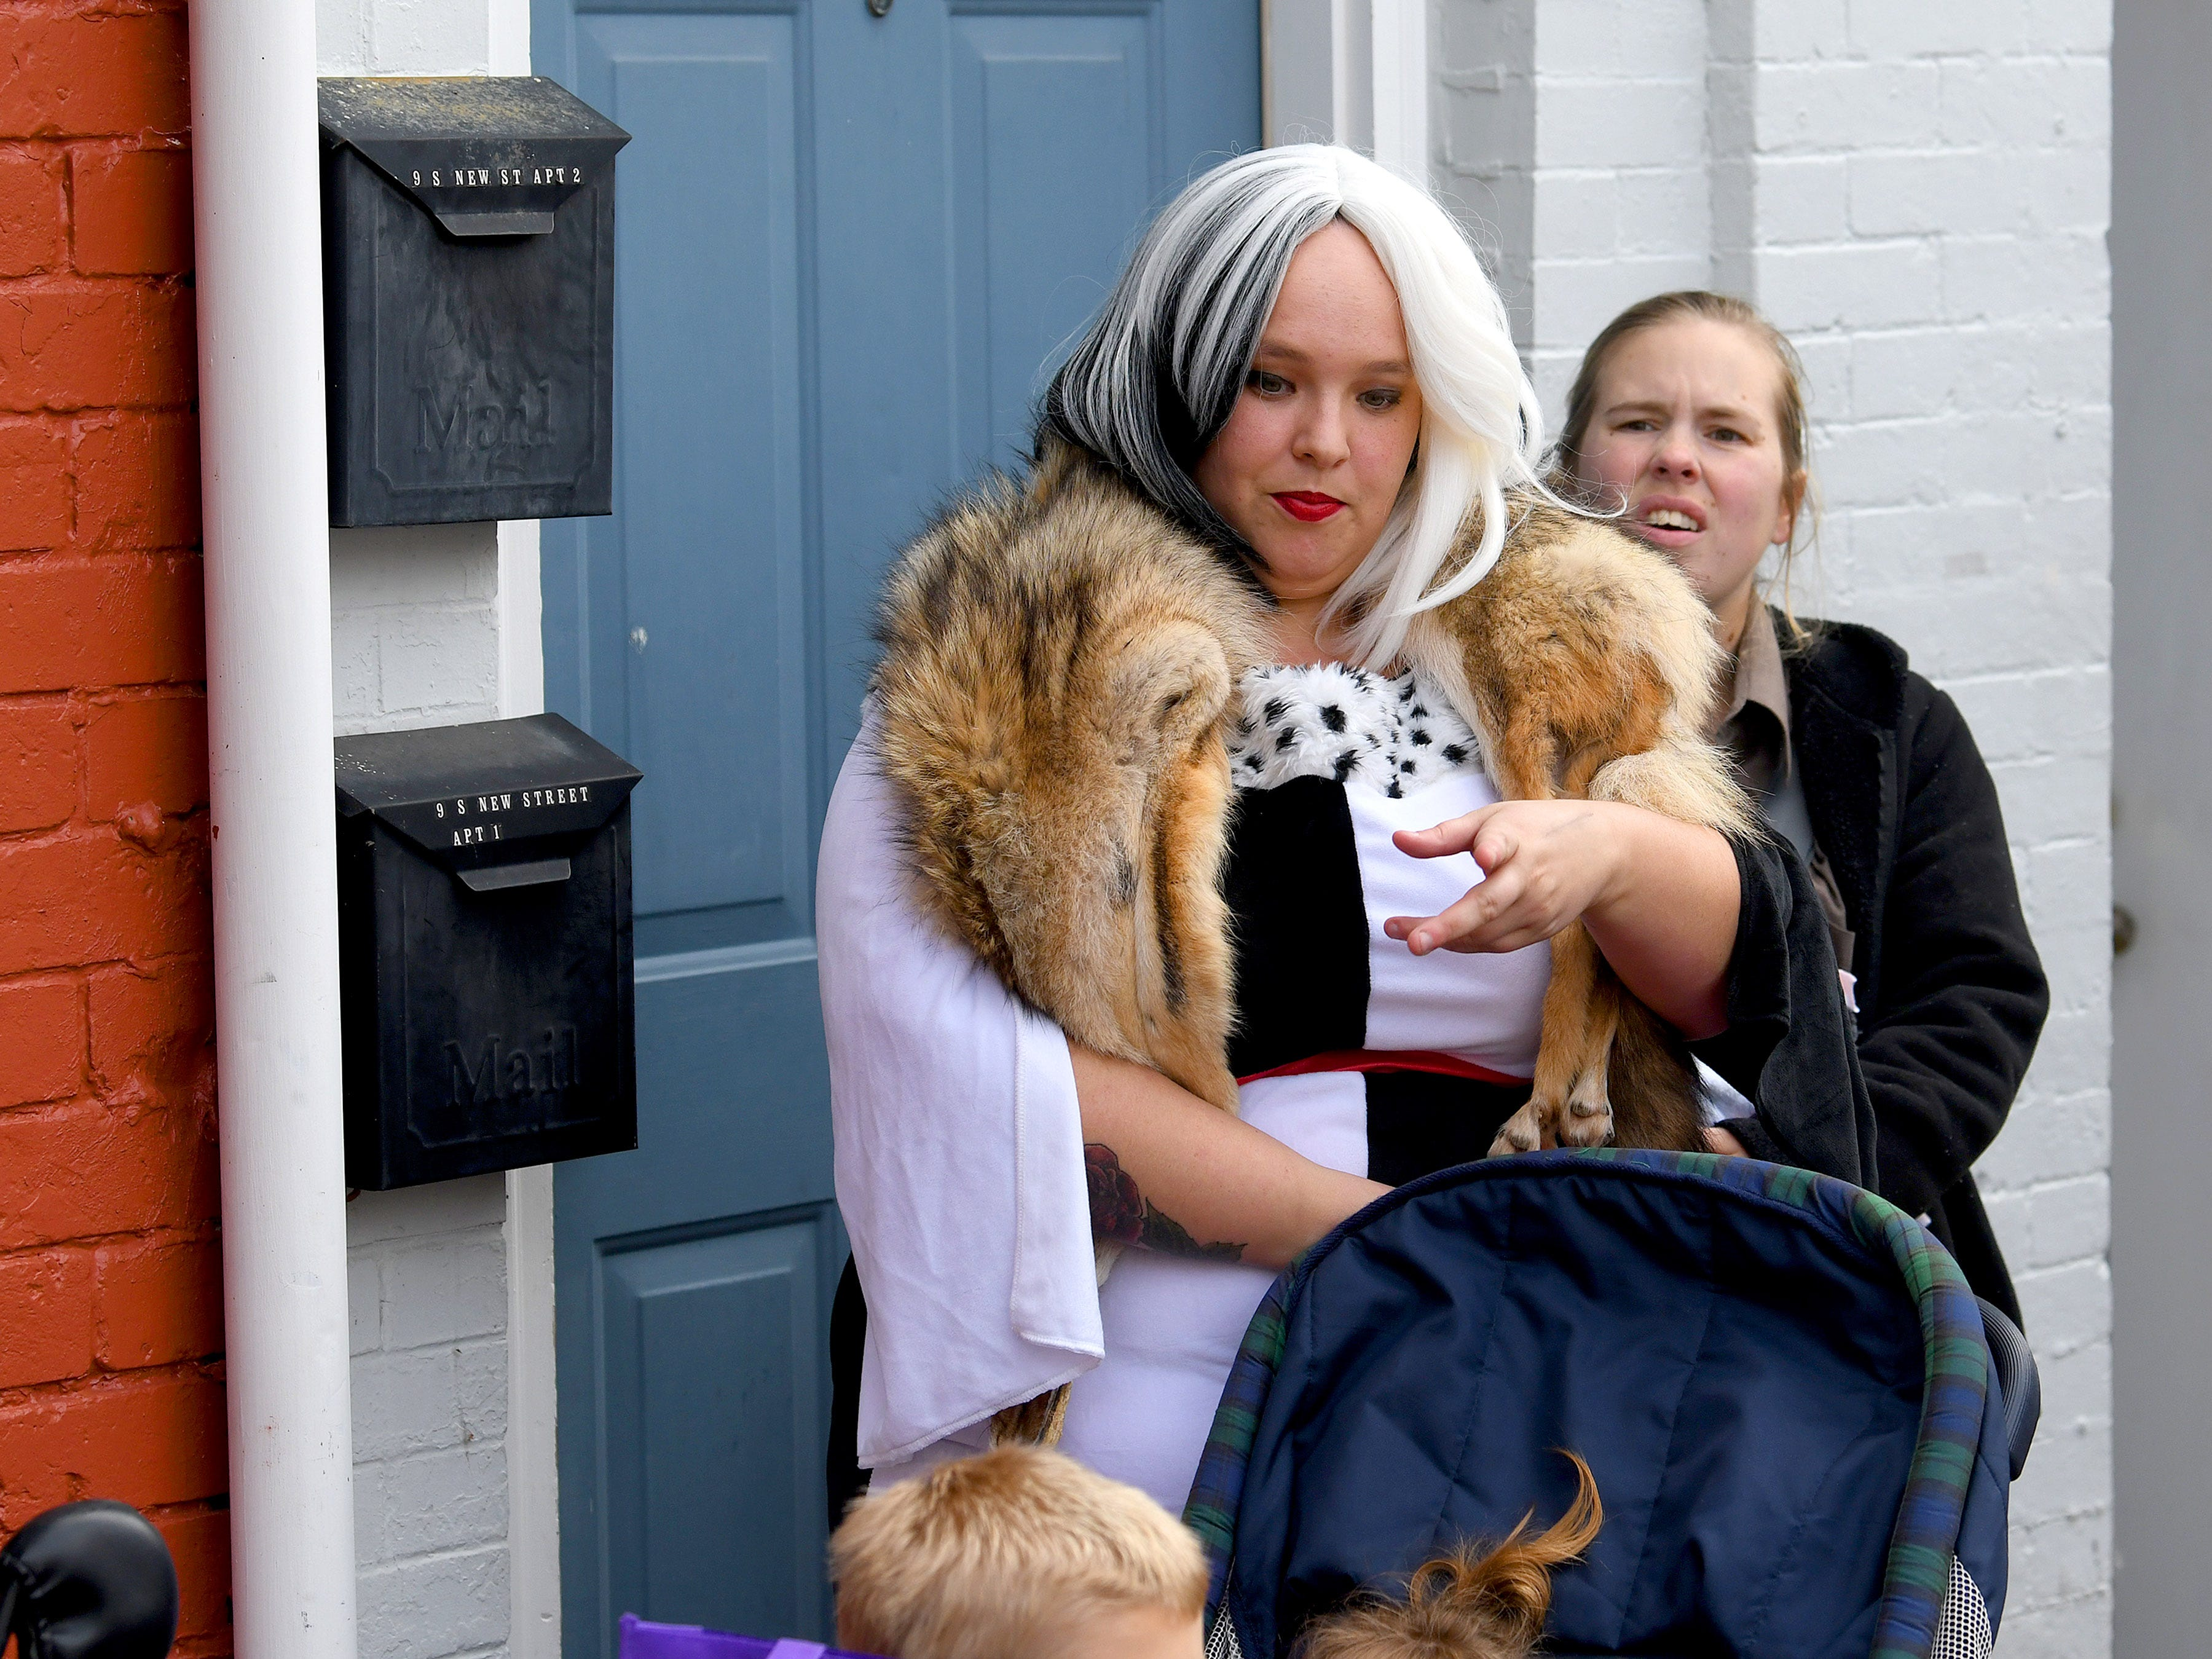 One adult dresses as Cruella DeVille during the annual downtown trick-or-treating event in Staunton on Saturday, Oct. 27, 2018.